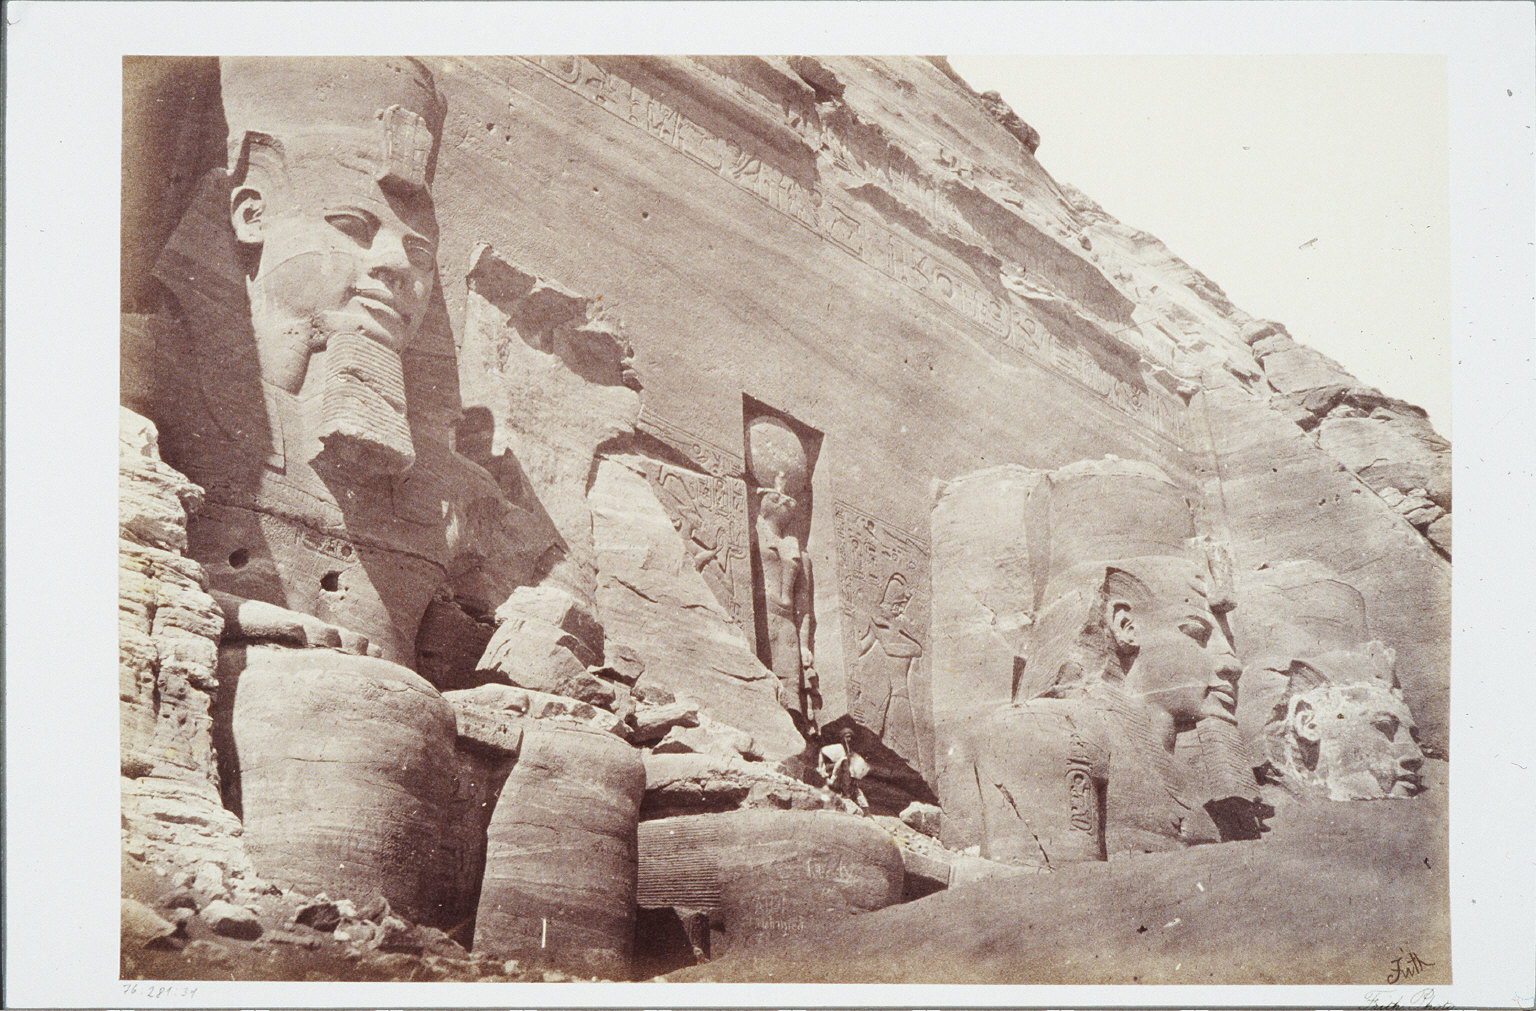 Facade of the Temple, Abou Simbel, Nubia- From the East